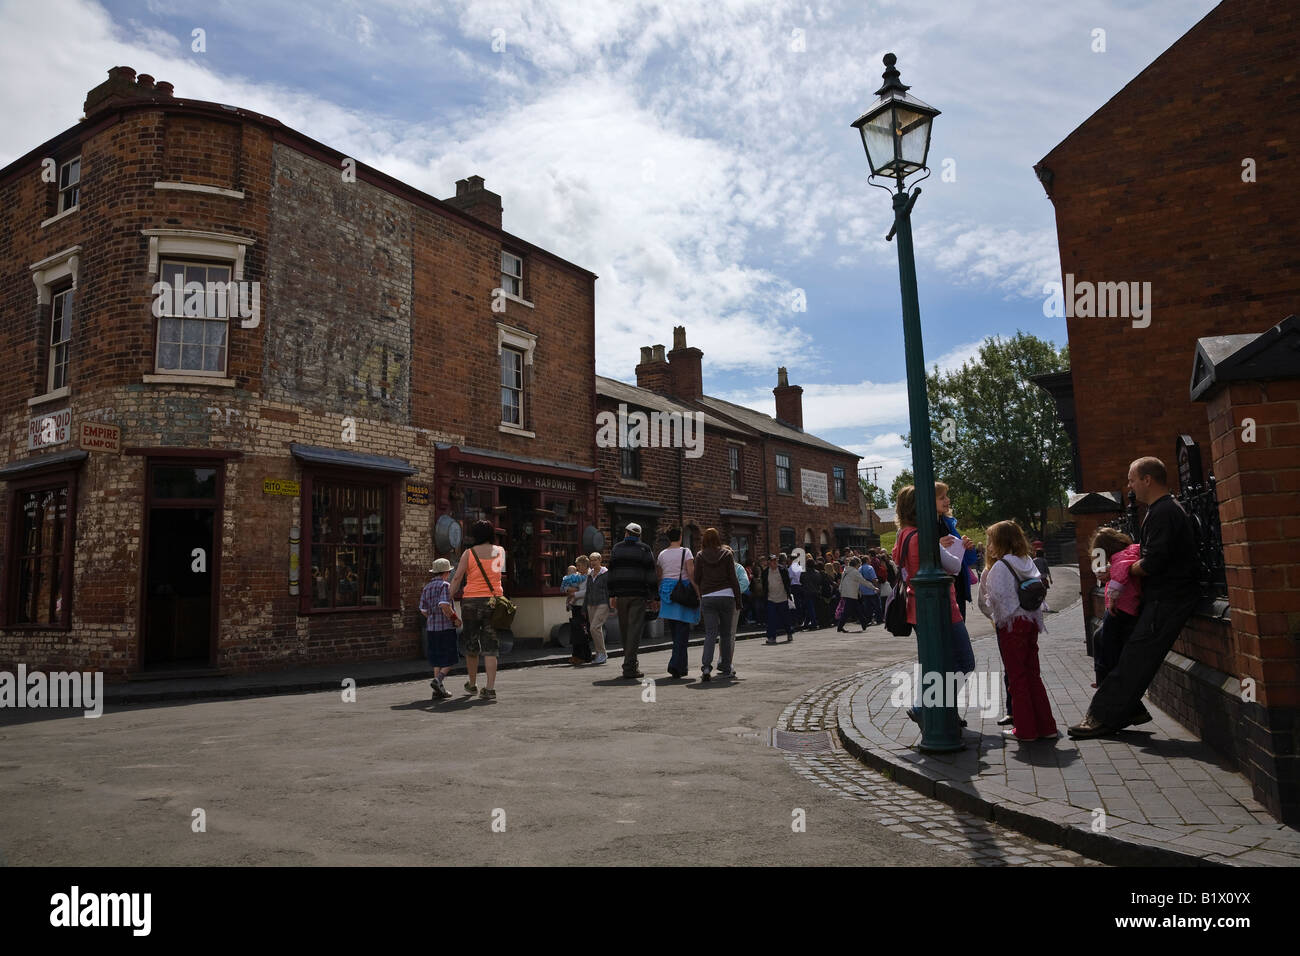 Village street with reconstructed buildings at the Black Country Living Museum, Dudley, West Midlands, England - Stock Image